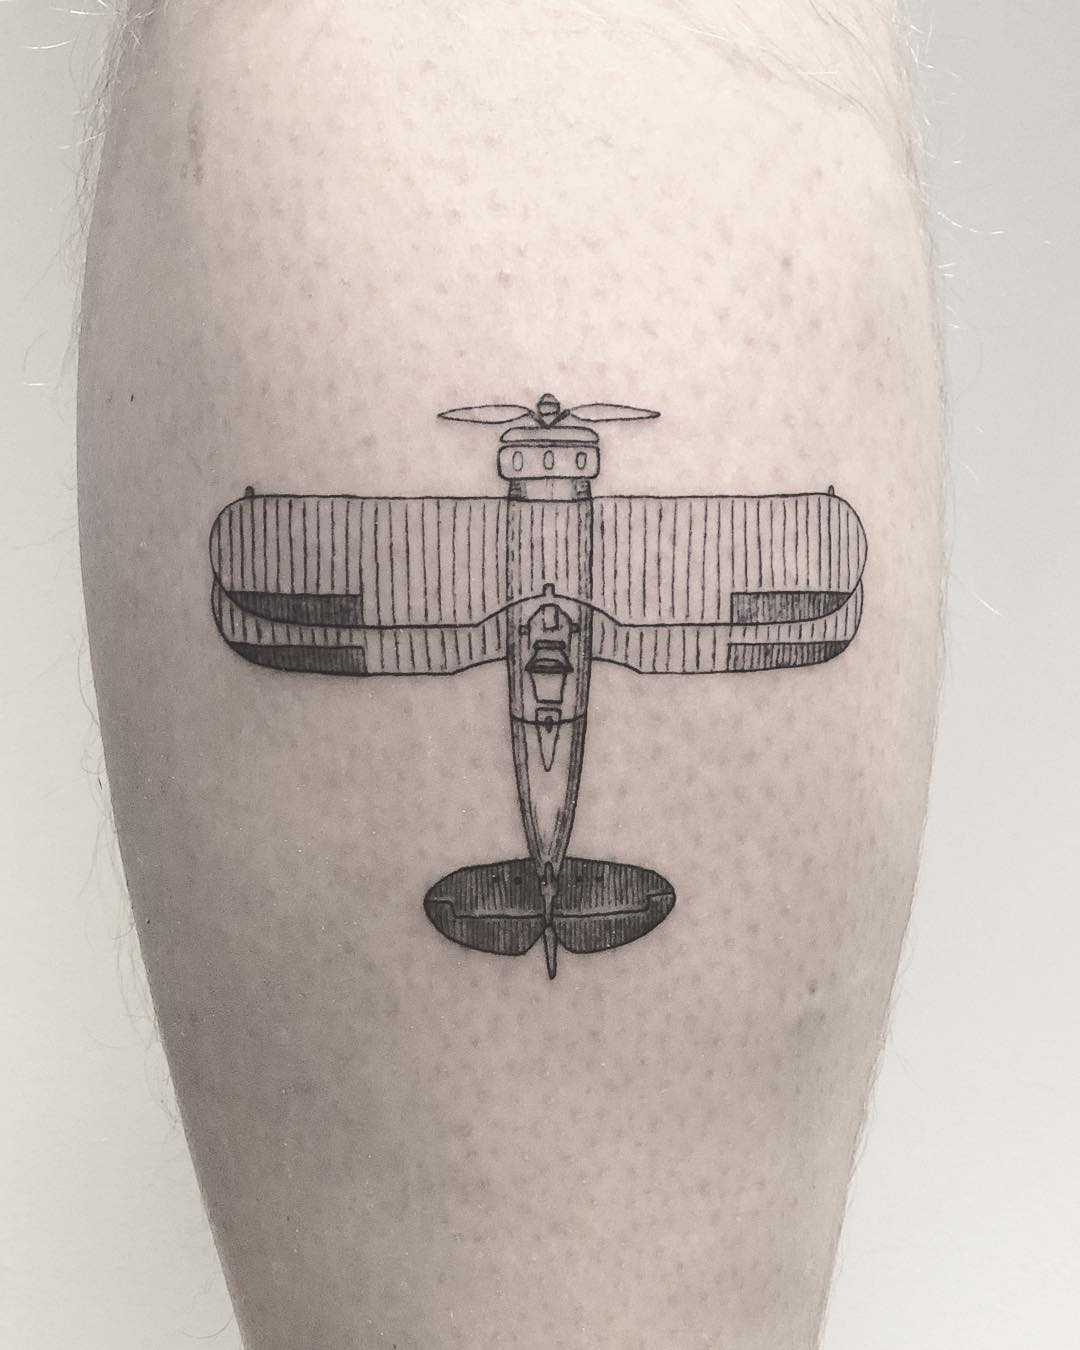 An old airplane tattoo by Annelie Fransson